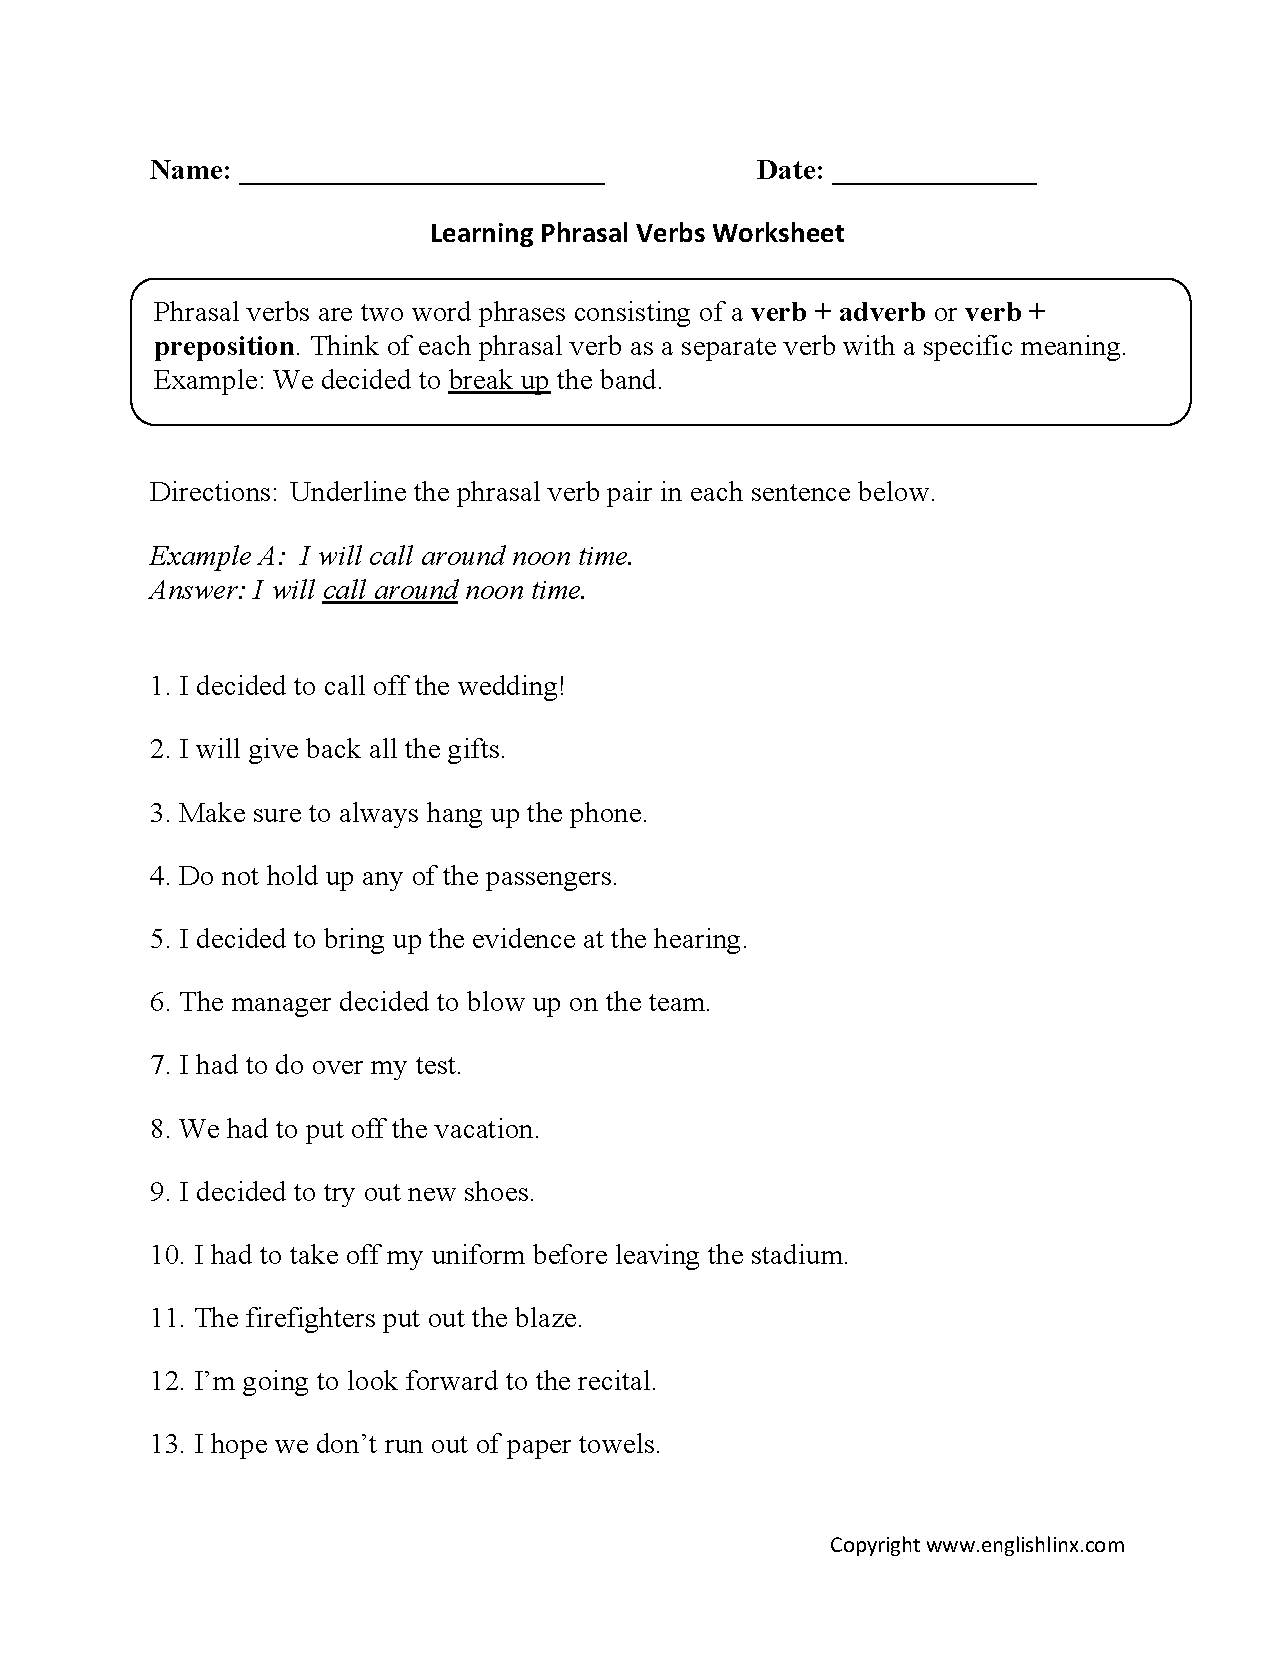 worksheet Linking Verbs Worksheets englishlinx com verbs worksheets phrasal worksheets